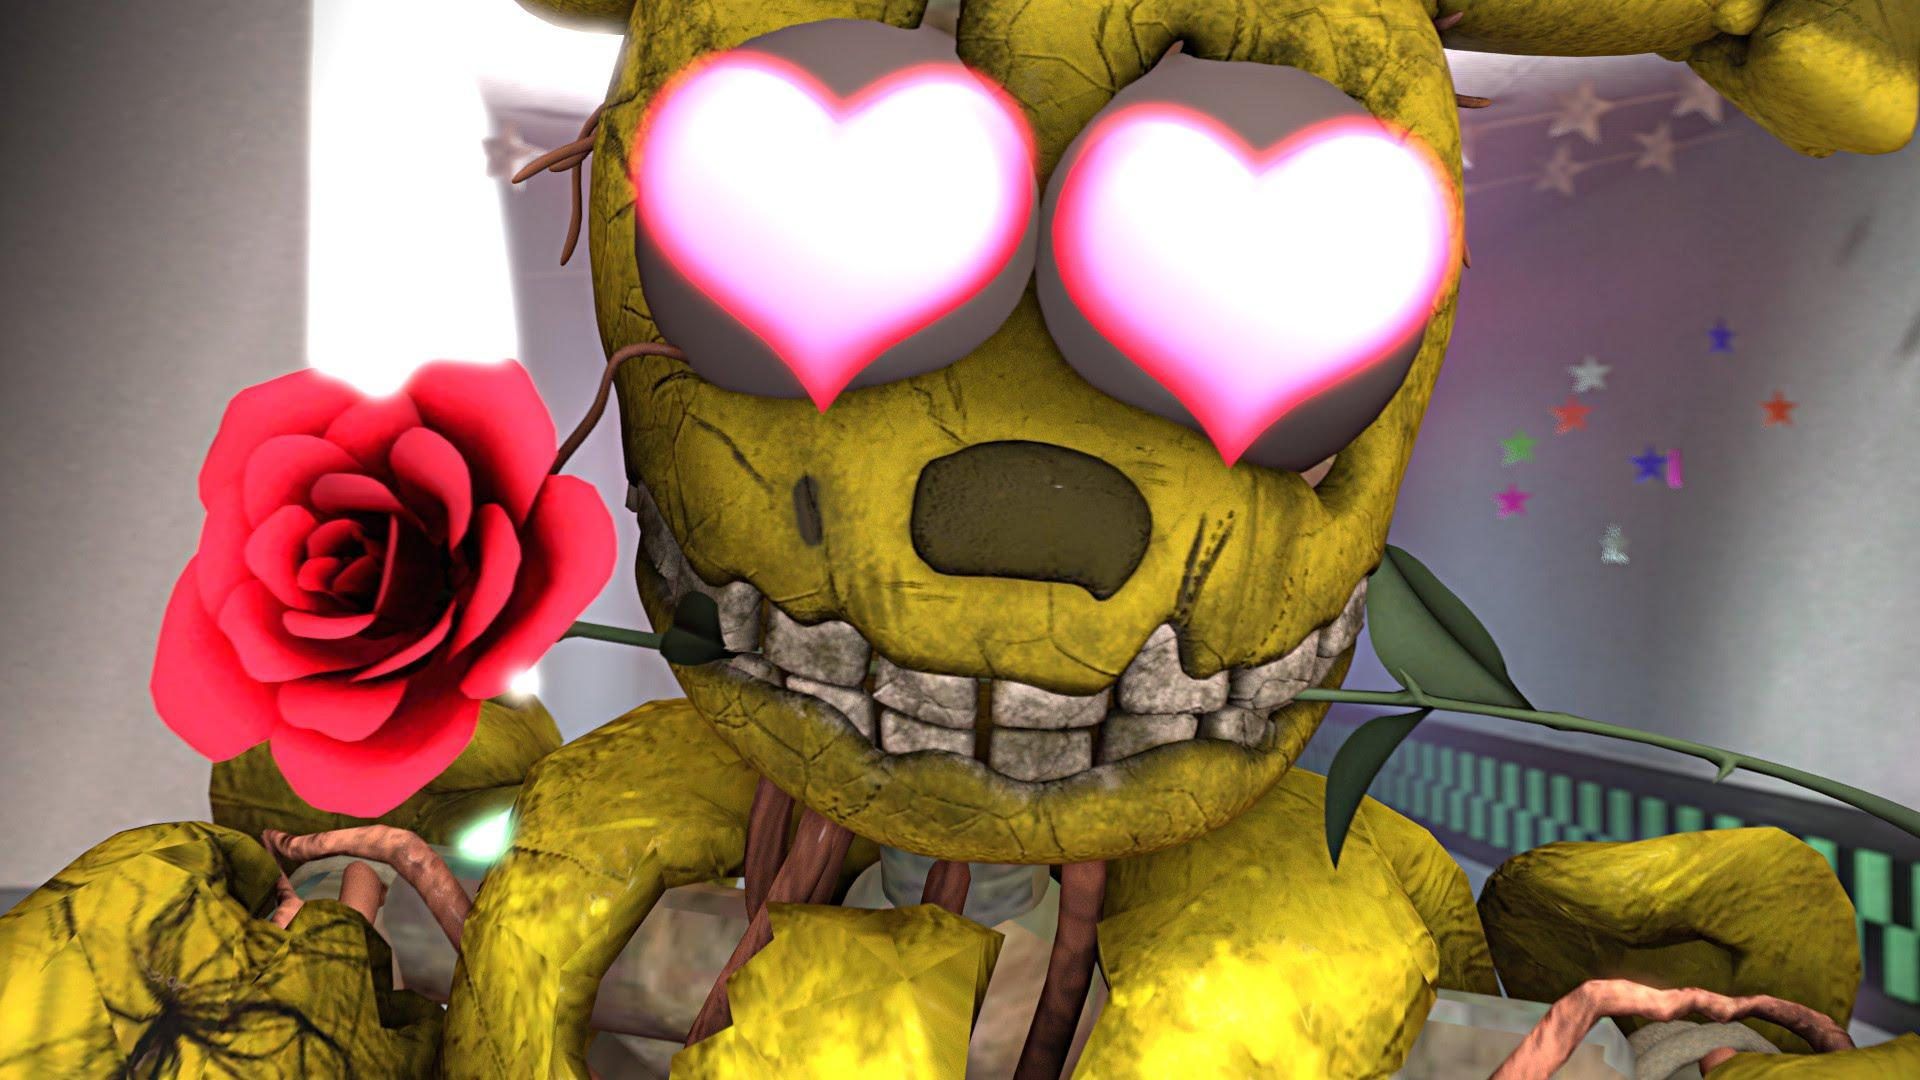 At the sfm Sample Story. Freddy fall in love with who?